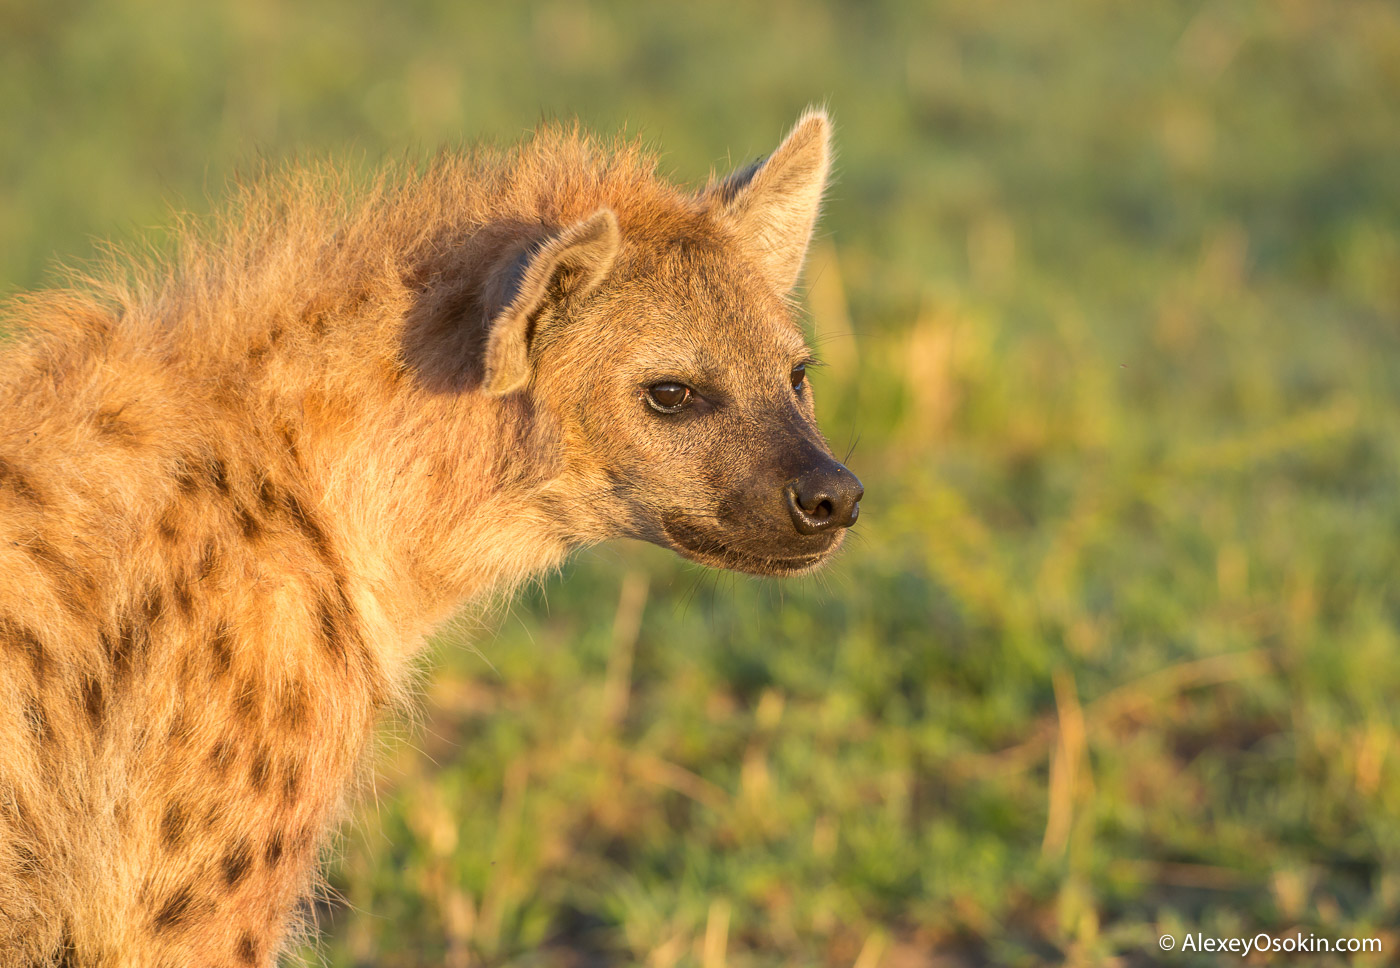 hyena_new_oct.2015_ao-10.jpg